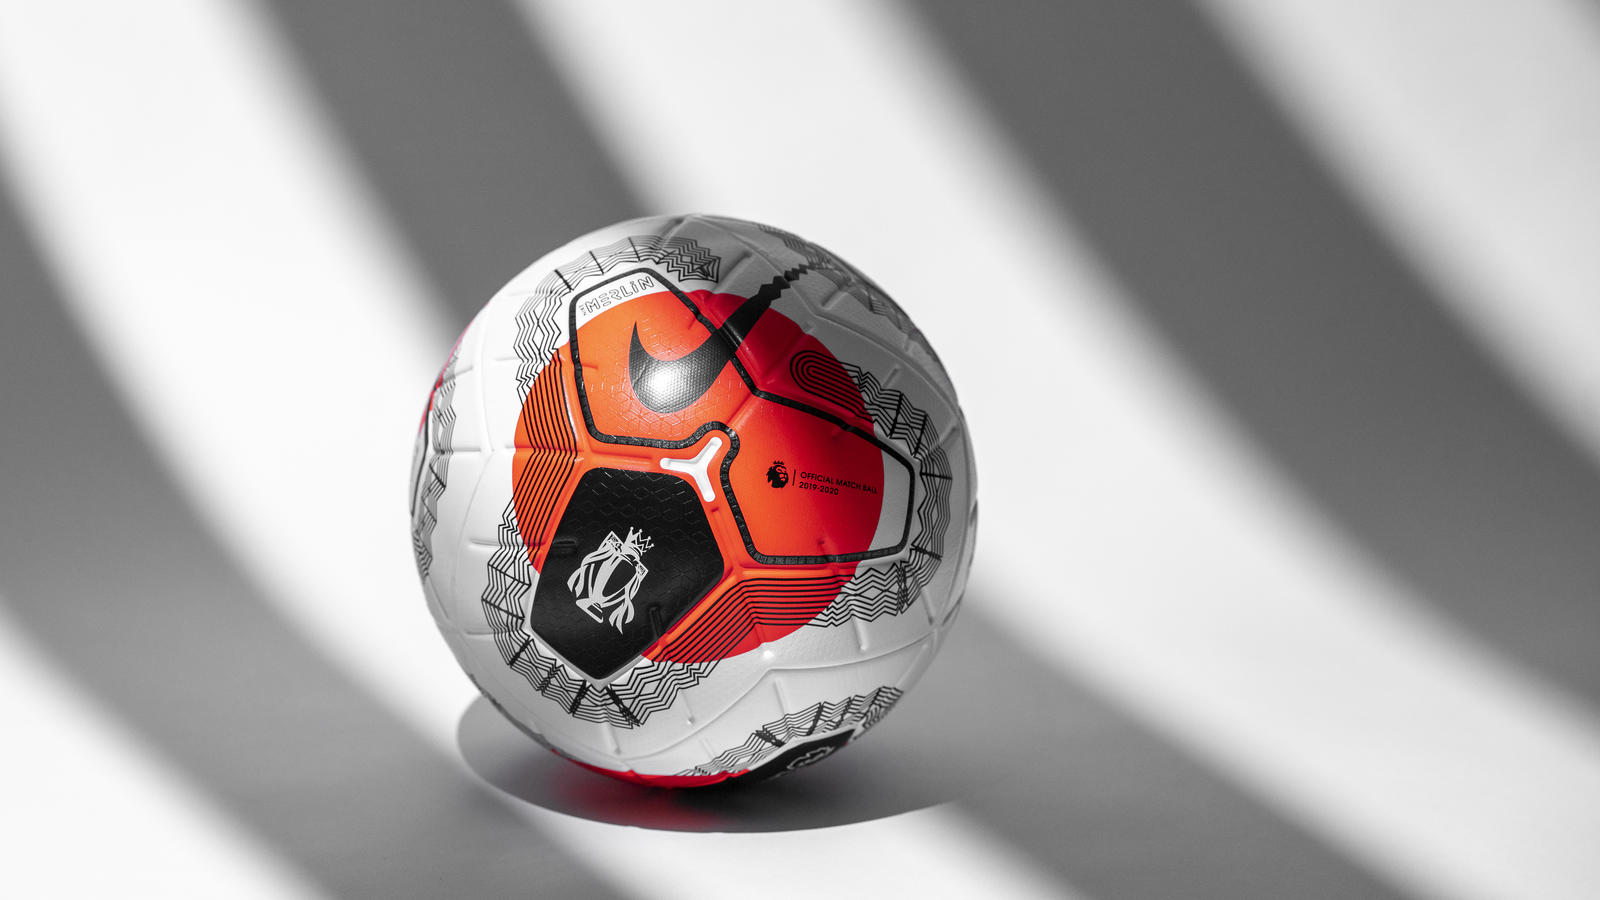 EPL: Nike Drops Brand New End Of Season Ball